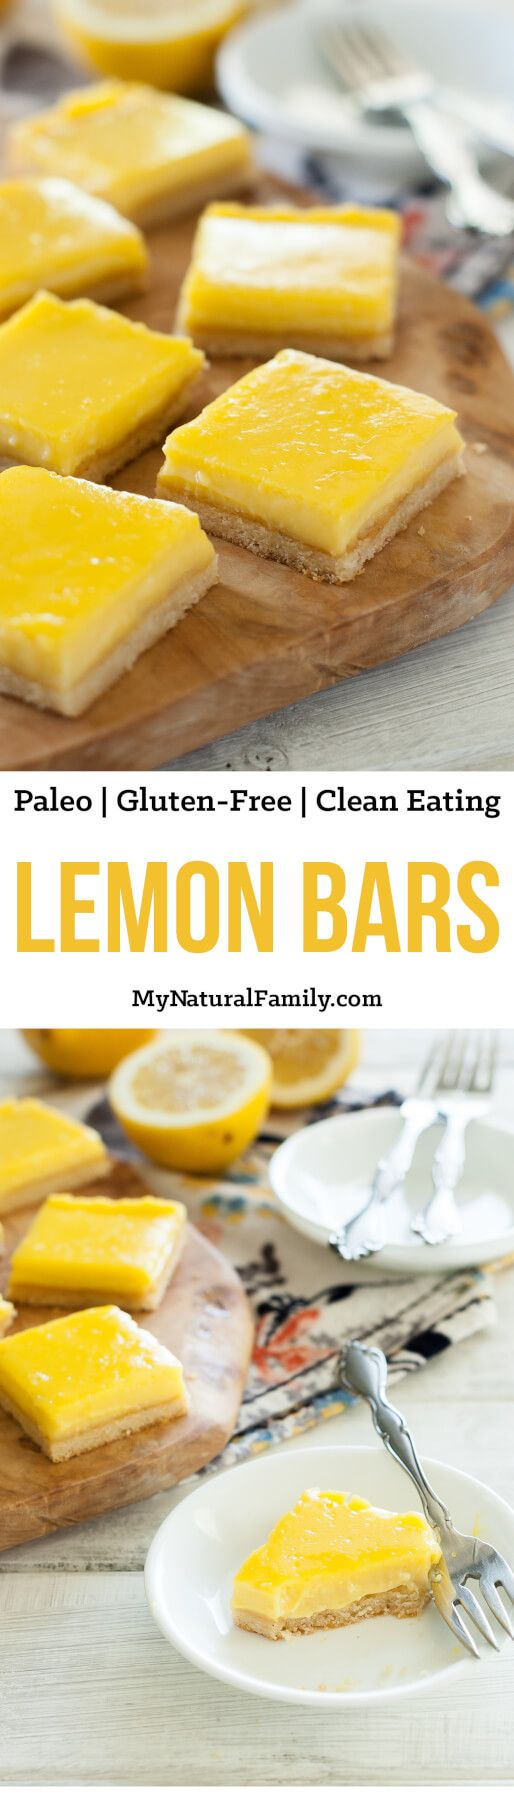 These Paleo Lemon Bars Recipe are so good! They have just the right amount of of lemon filling and crust. These are my all-time favorite dessert!